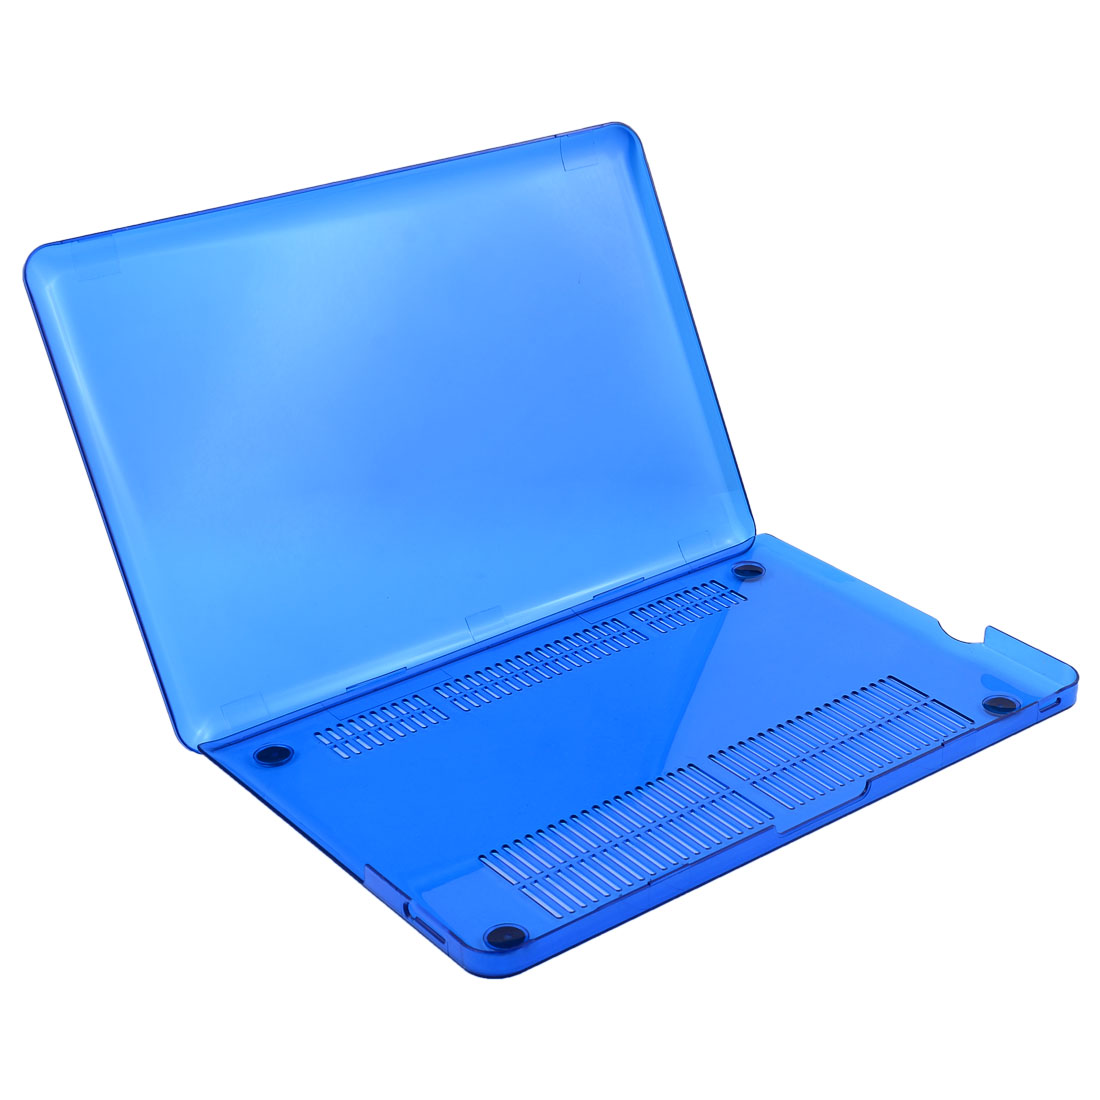 Plastic Screen Protector Cover Case Crystal Blue for Macbook Pro 13.3 Inch